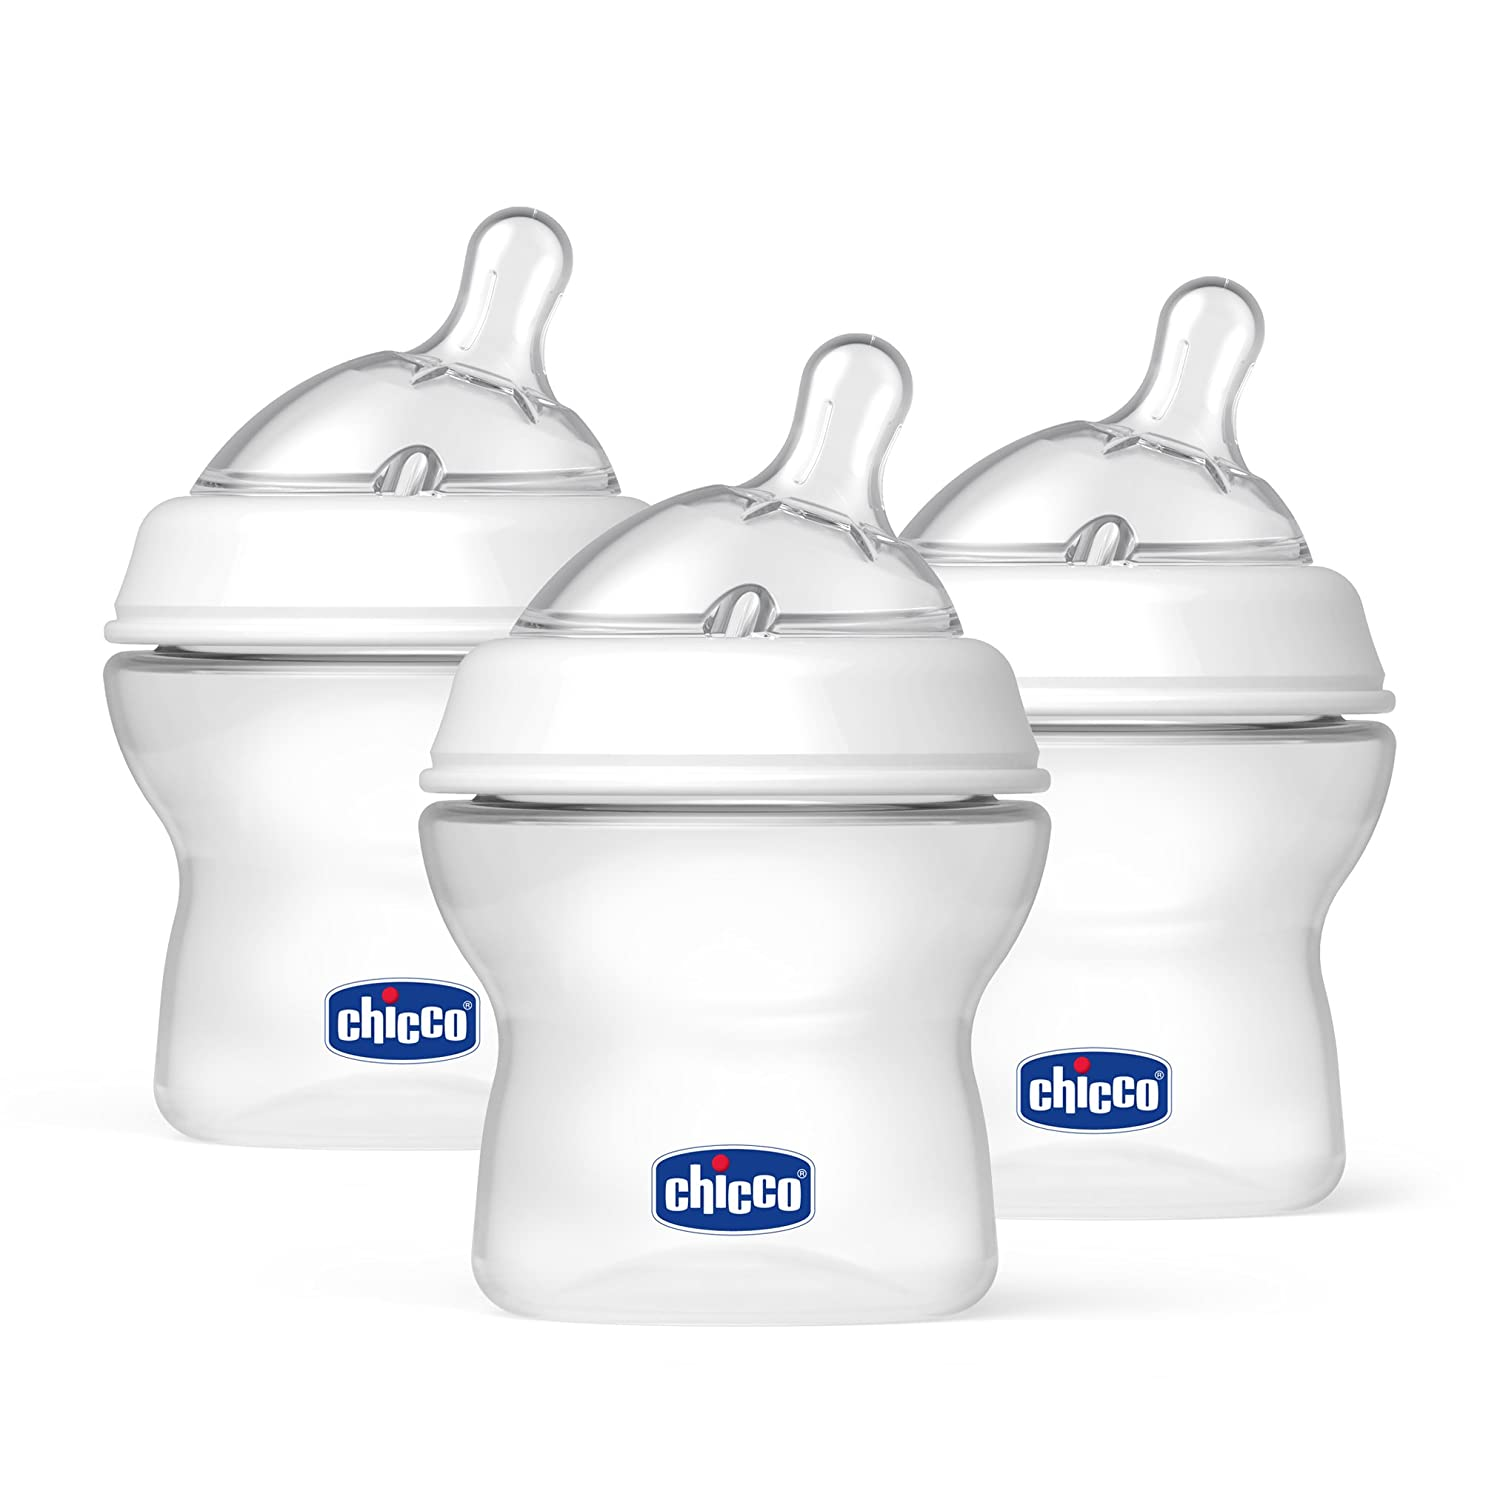 Chicco 8071150 NaturalFit Tri-Pack Bottles for Newborn Babies, 5oz, White 00080711500070